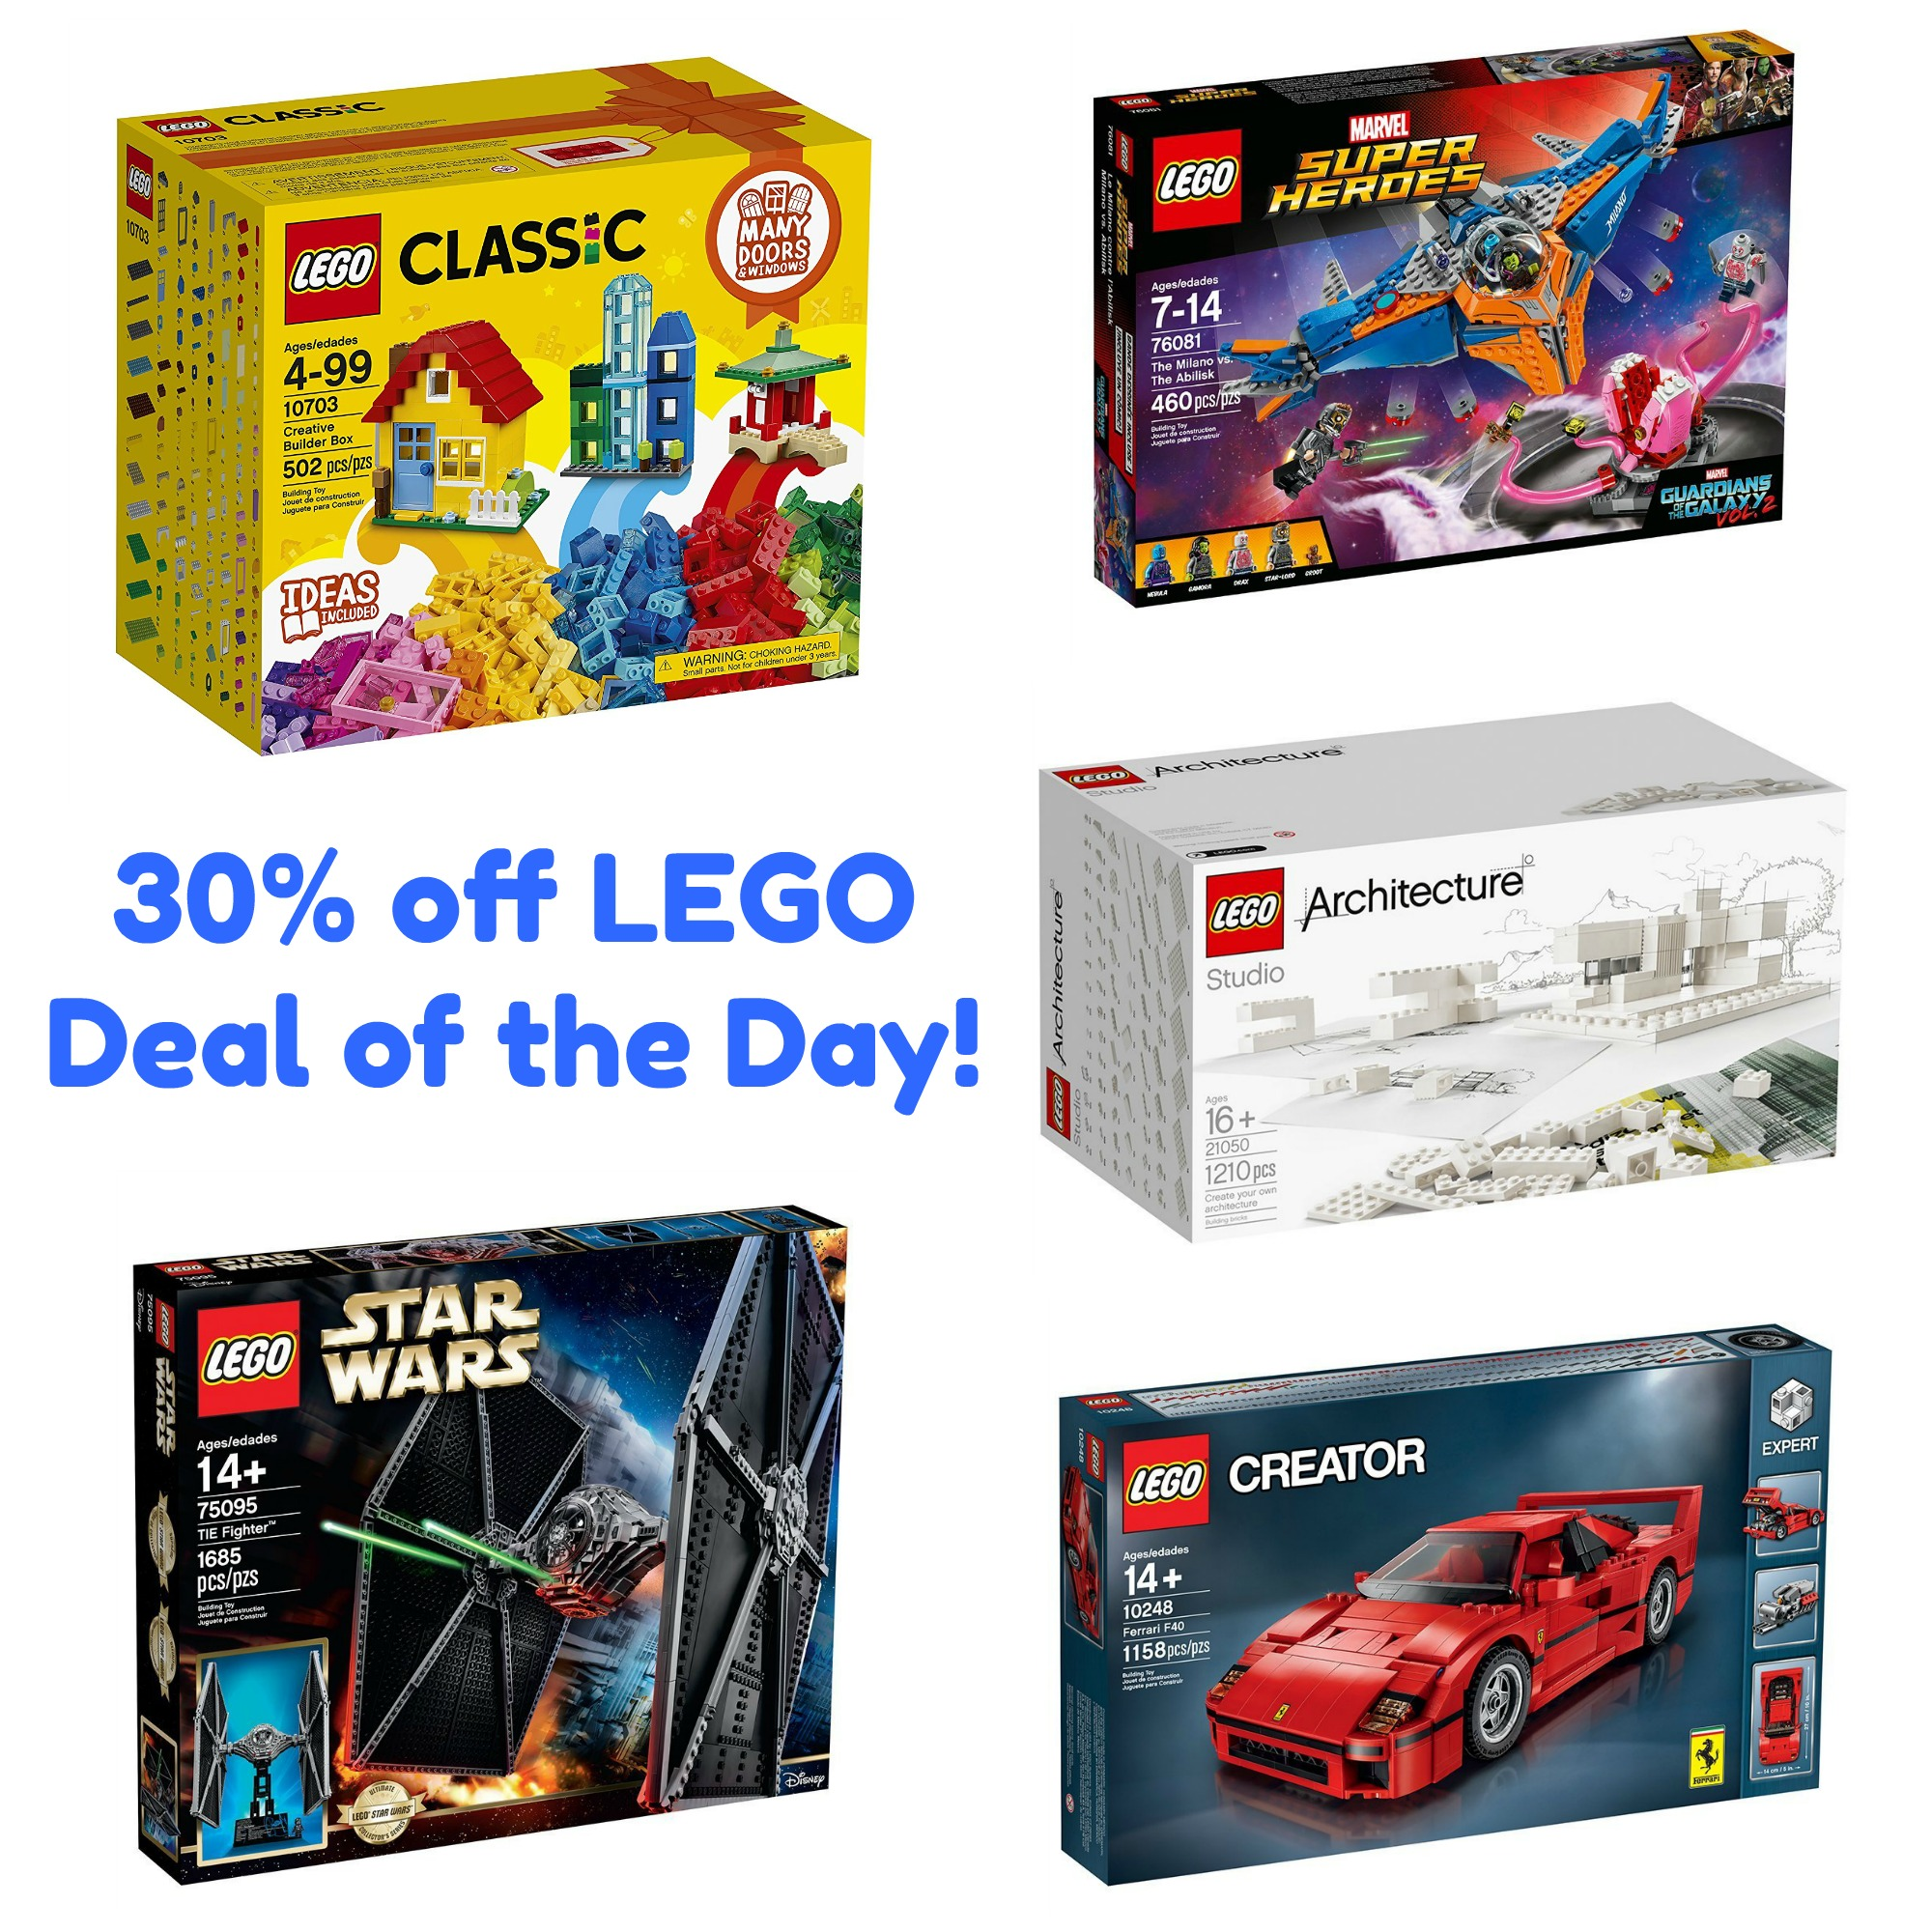 Please Click Here For Exclusive LEGO Deals